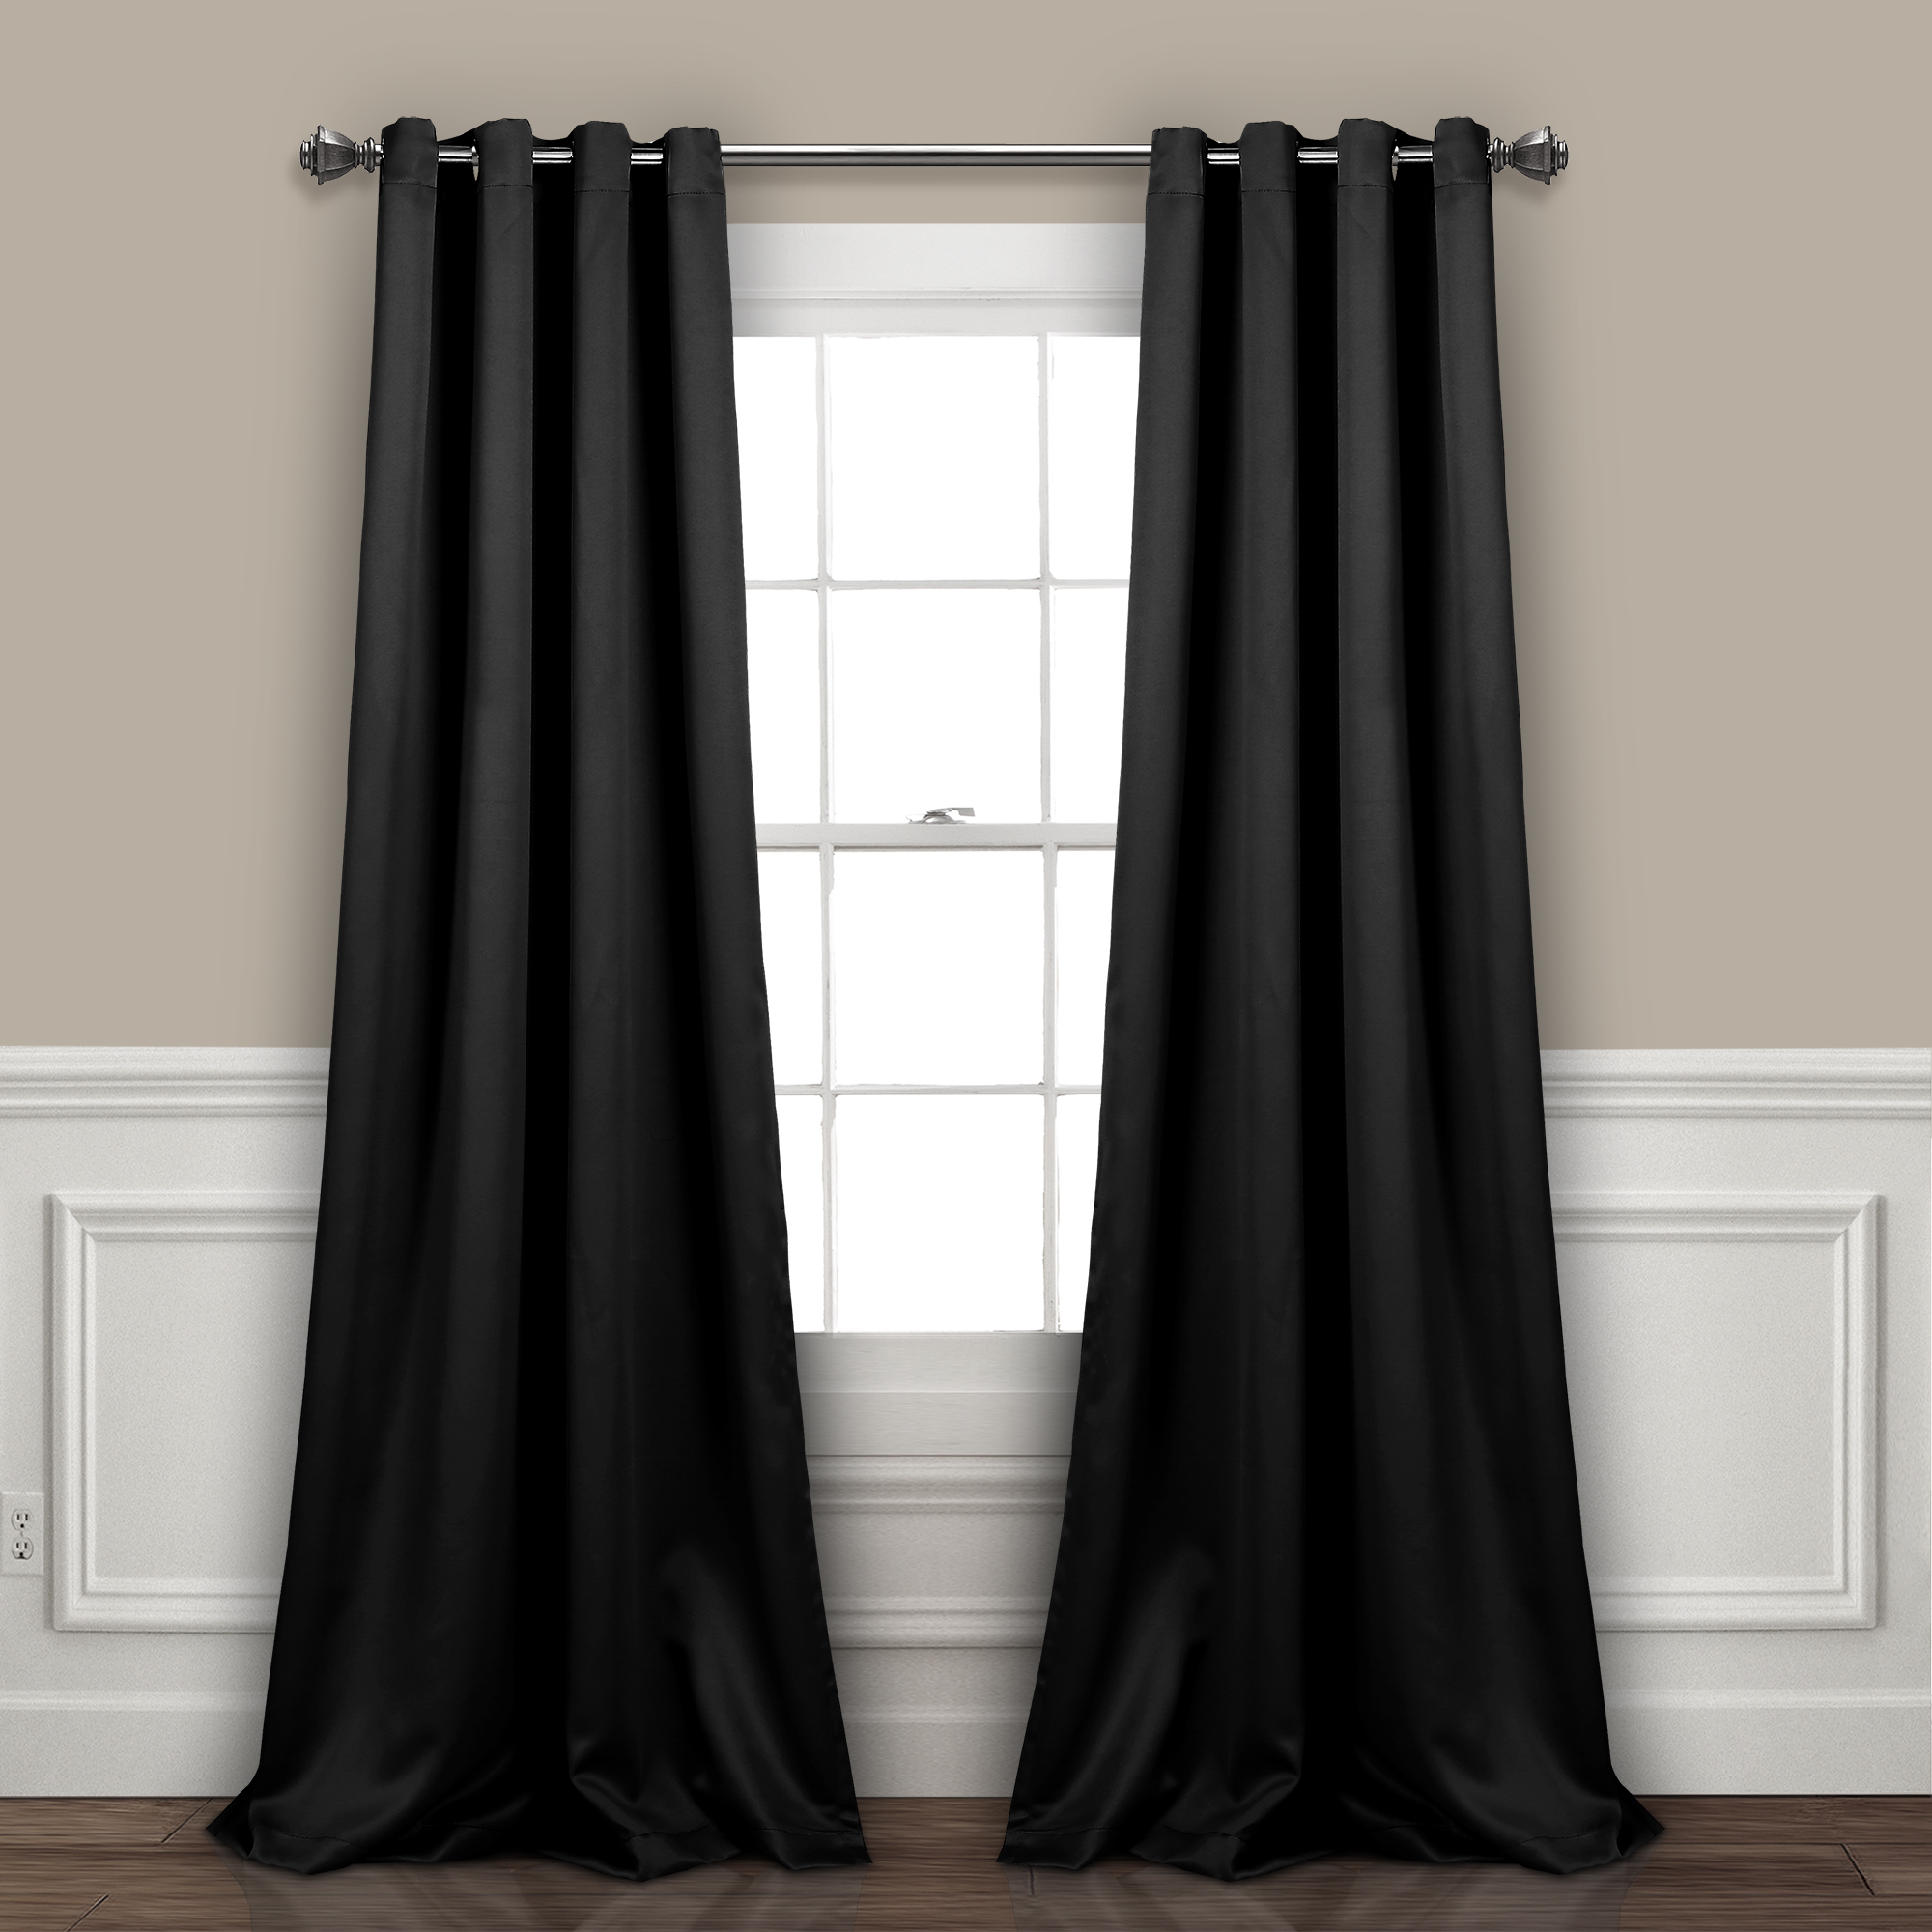 Insulated Grommet Blackout Curtain Set Up To 50%off Plus Inside Twig Insulated Blackout Curtain Panel Pairs With Grommet Top (View 20 of 30)